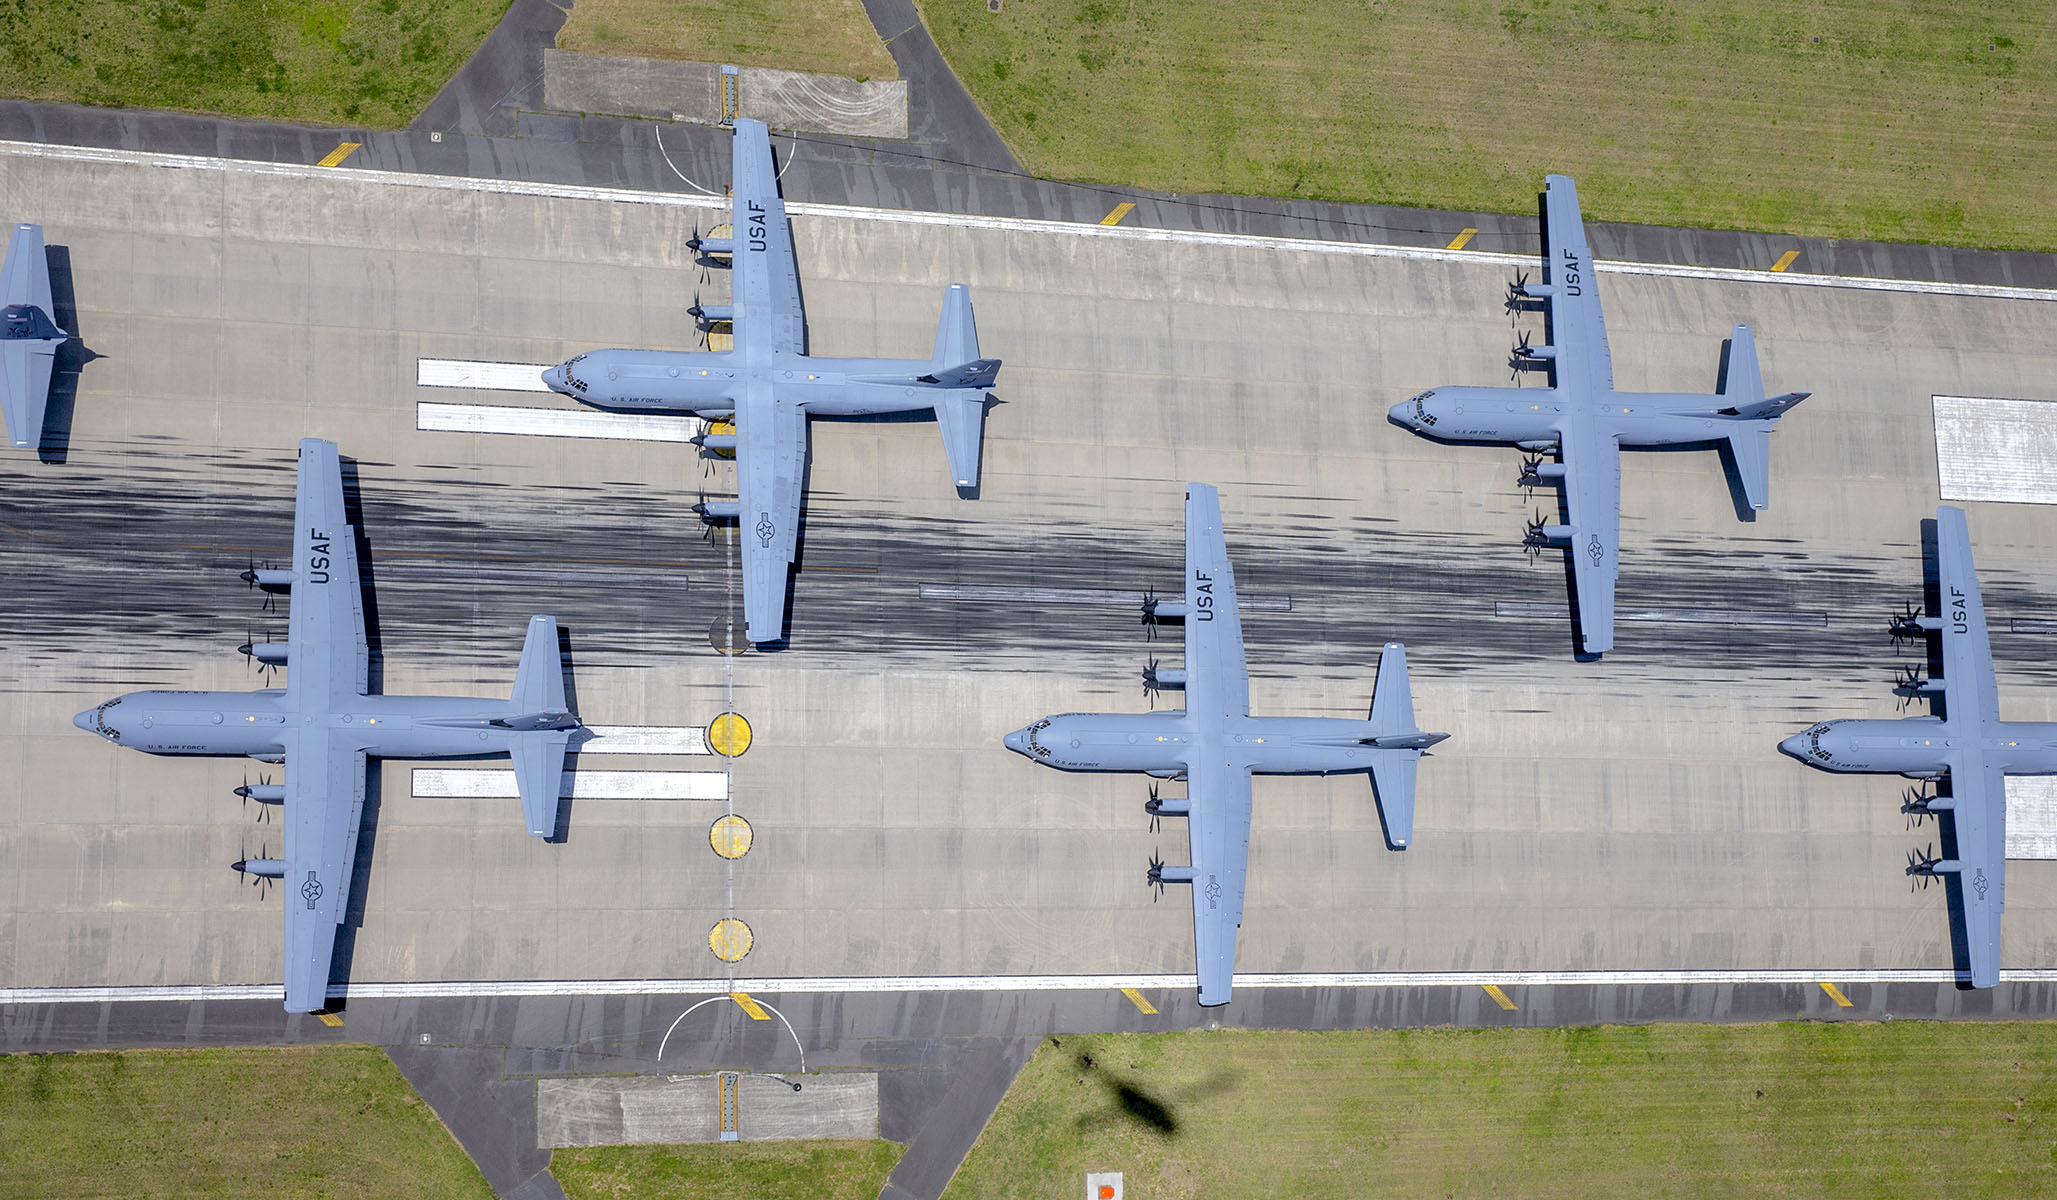 C-130J Super Hercules from the 36th Airlift Squadron prepare to take off during the 374th Airlift Wing Generation Exercise Elephant Walk at Yokota Air Base, Japan, May 4, 2018. The exercise was conducted in order to demonstrate the wing's ability to rapidly deploy forces across Indo-Pacific region. (Yasuo Osakabe/Air Force)